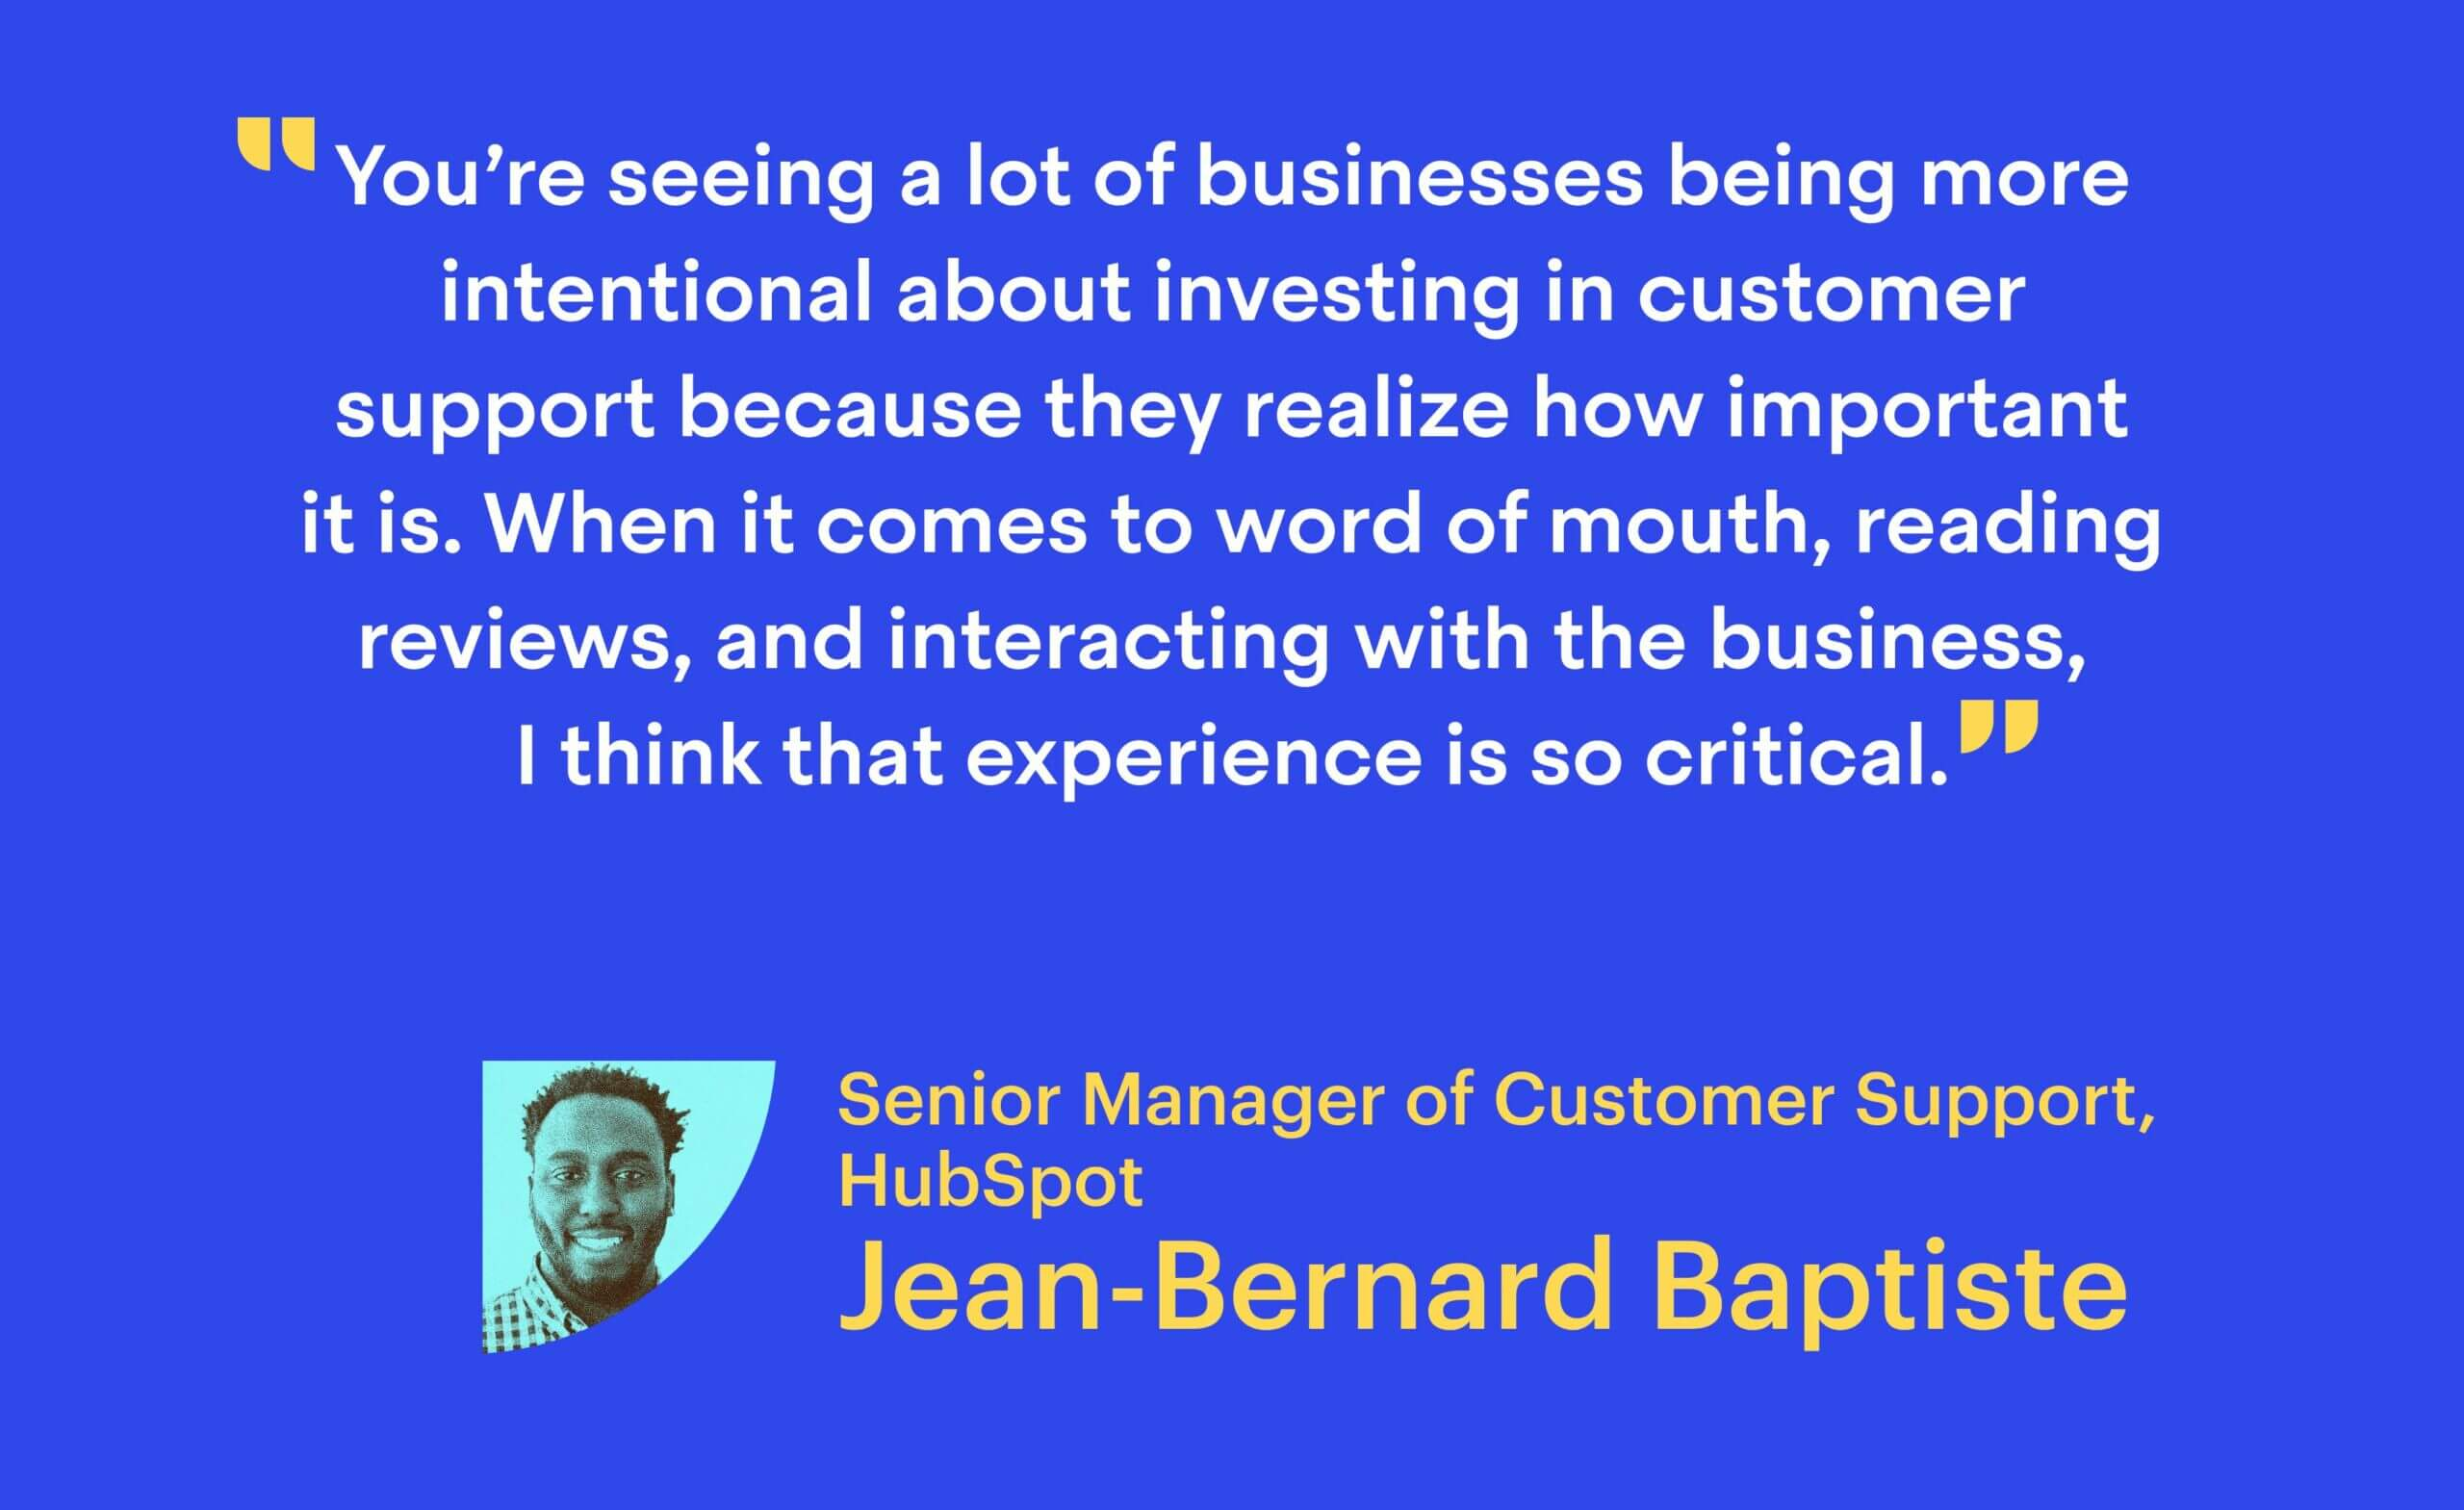 """""""You're seeing a lot of businesses being more intentional about investing in customer support because they realize how important it is. When it comes to word of mouth, reading reviews, and interacting with the business, I think that experience is so critical."""" Jean-Bernard Baptiste, Senior Manager of Customer Support at HubSpot"""